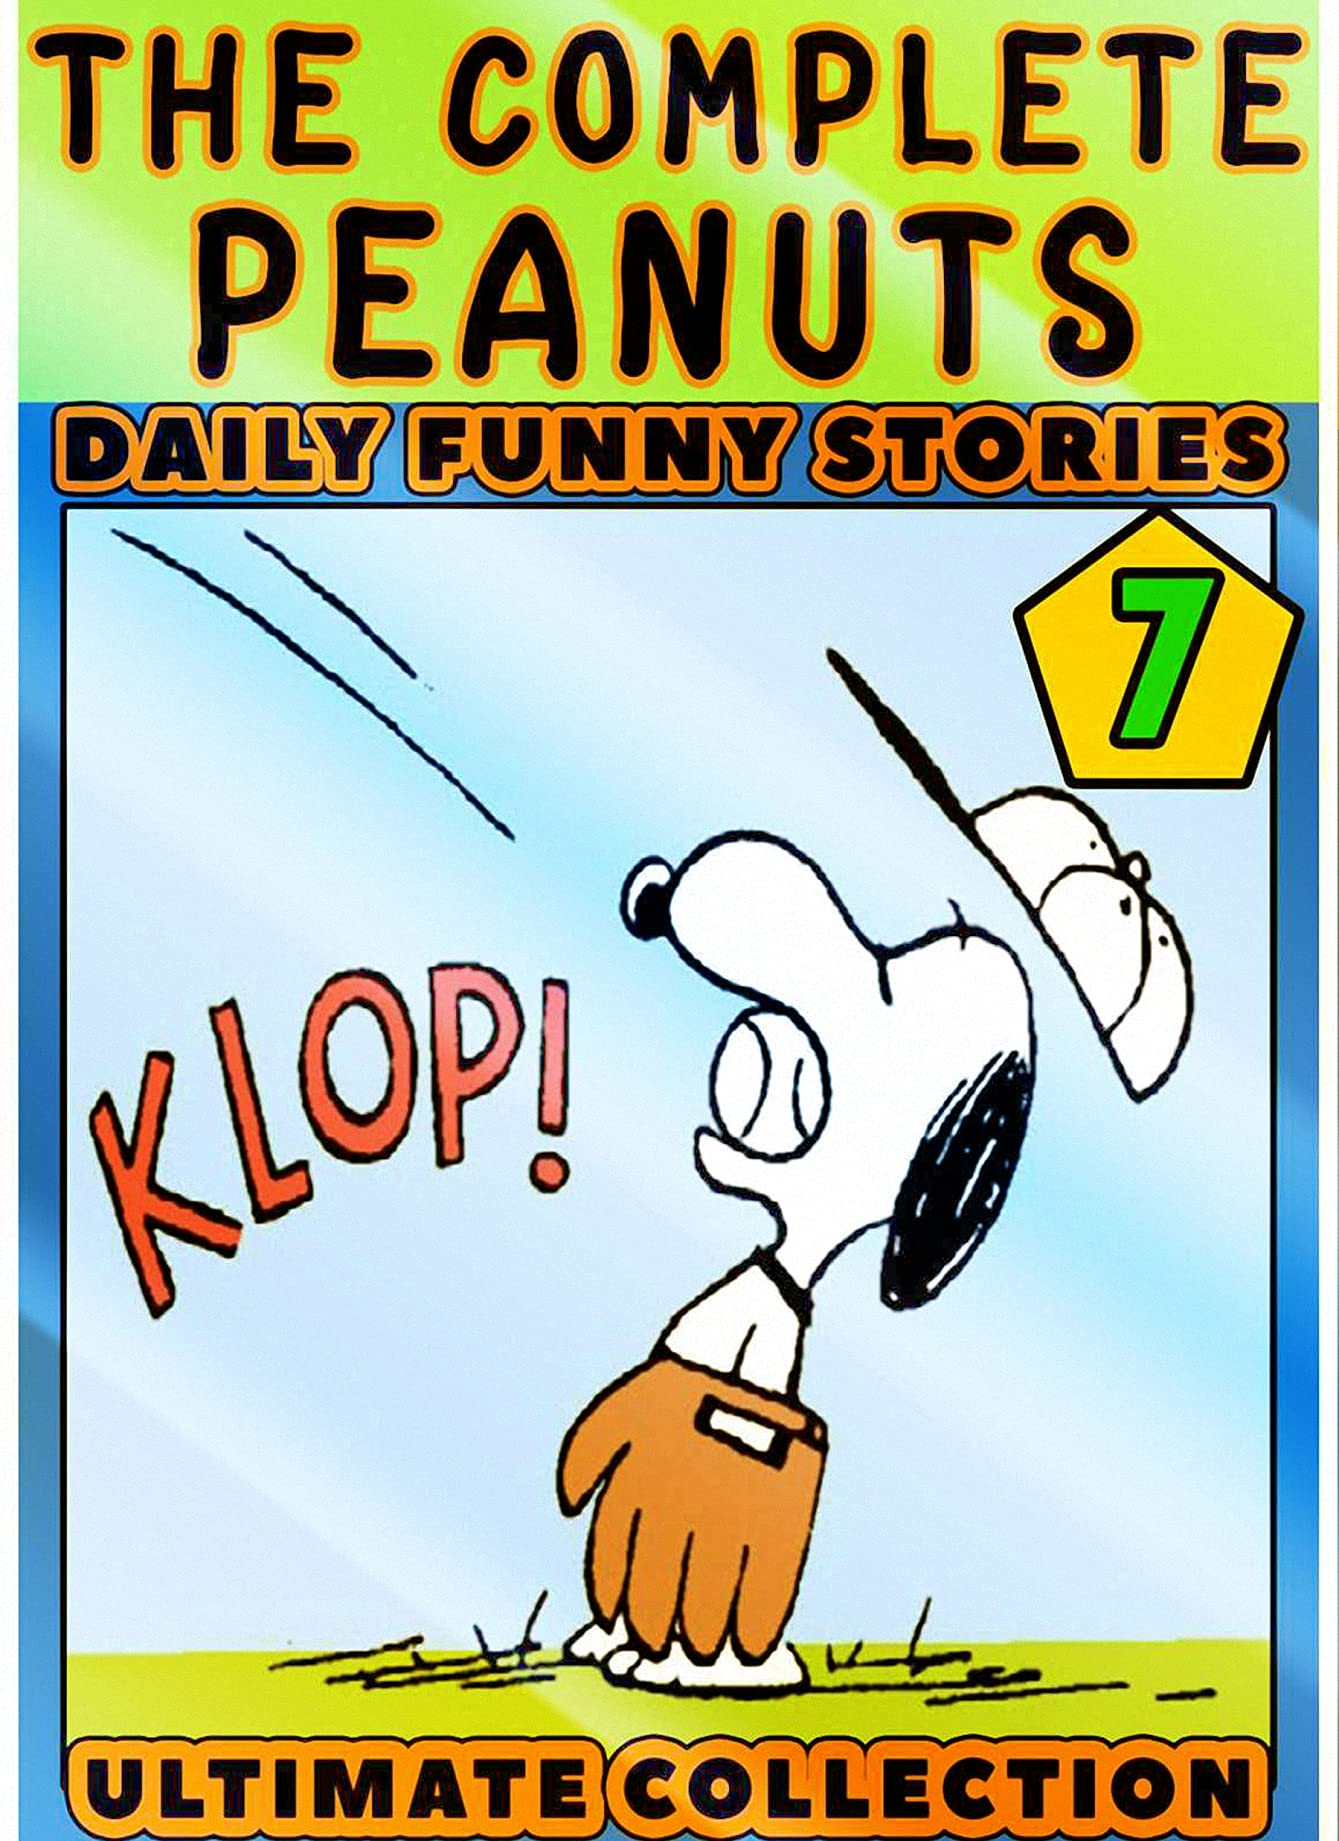 Peanut-The-Complete-Stories: Book 7 - Graphic Novel The Funny Complete Sno-opy Great Pea-nuts Comics For Boys Girls And Children